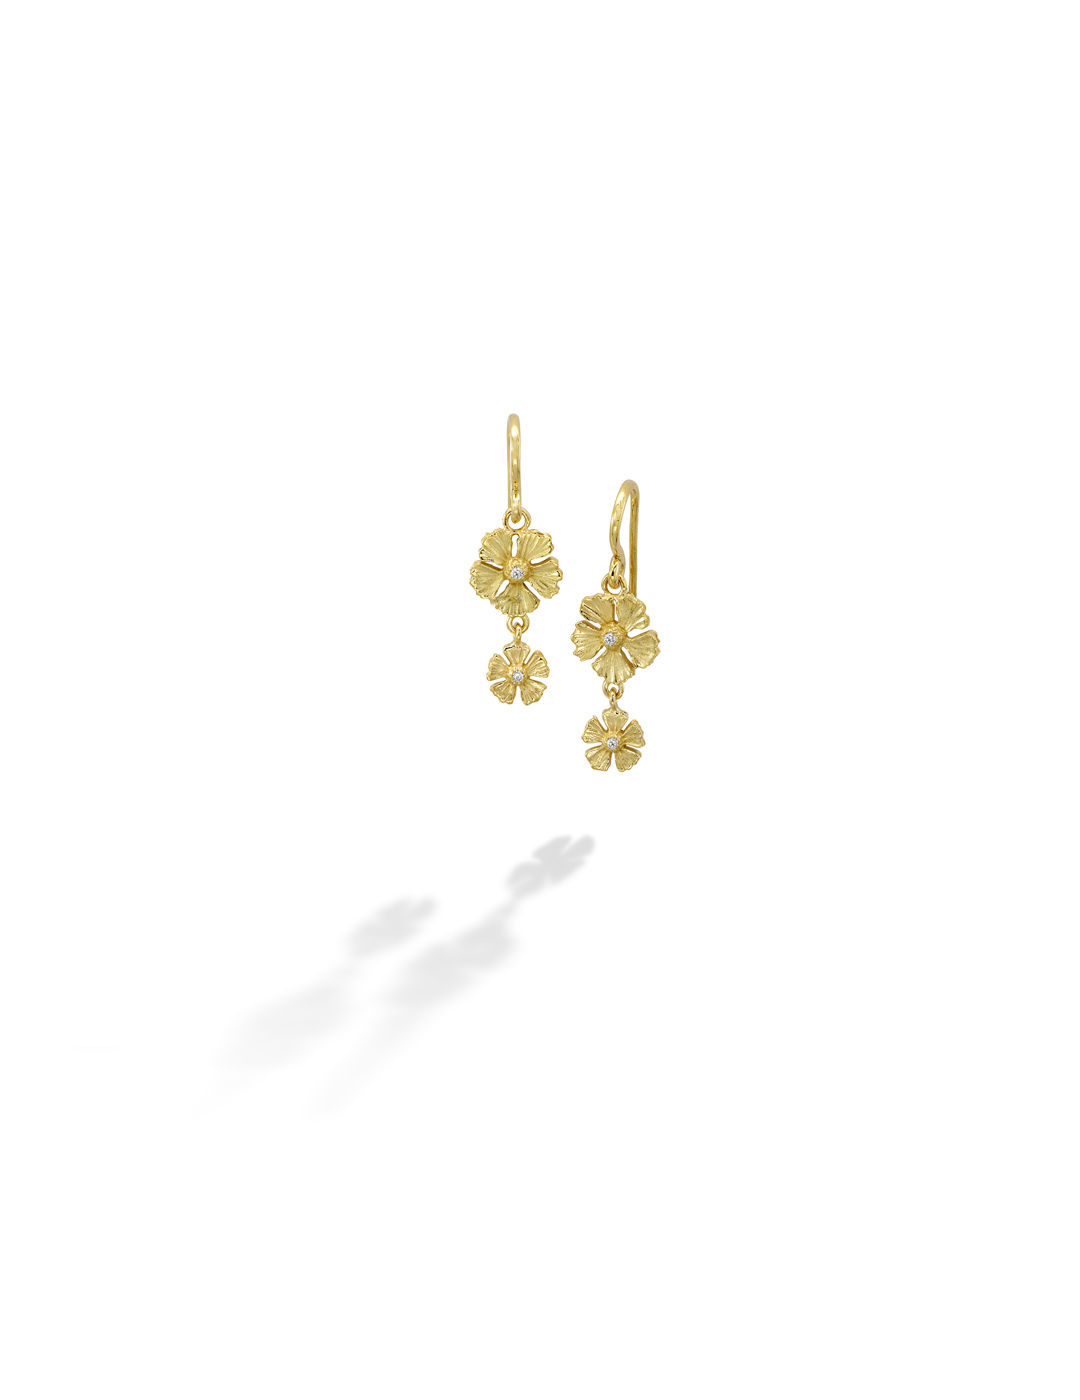 mish_products_earrings_SStrawFlwr-FrenchWire-Drop-ER-1